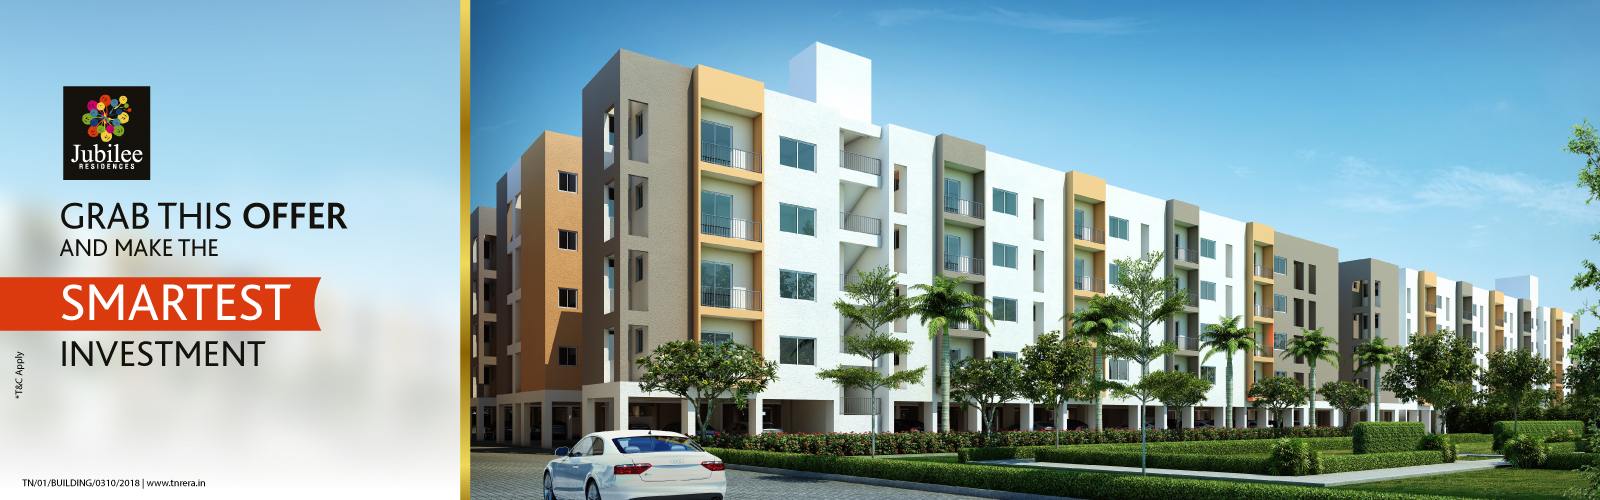 Flats for sale in Guduvanchery Chennai